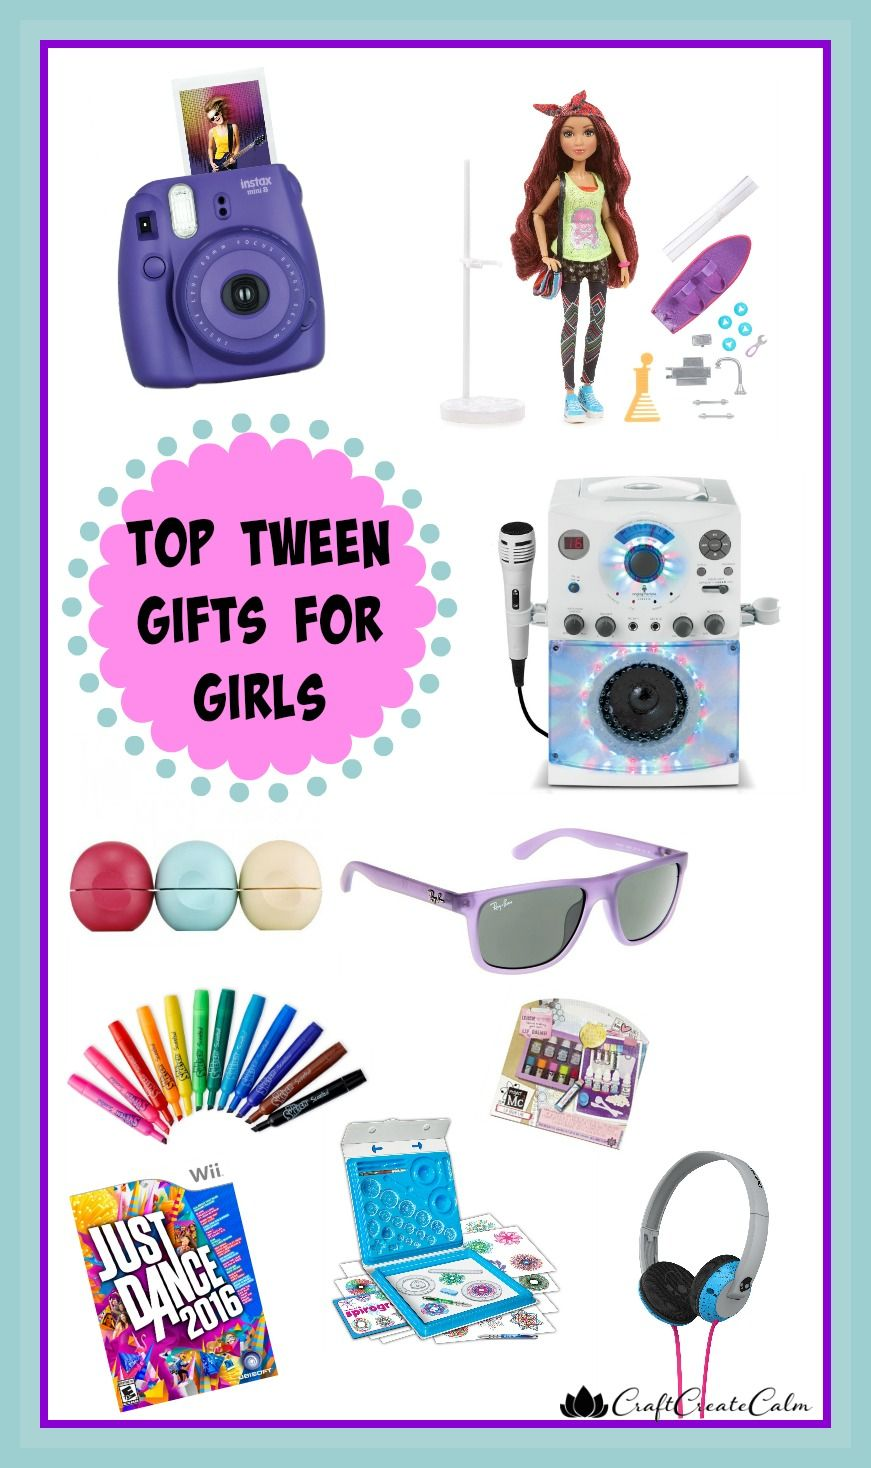 Toys For Tween Girls : Gifts for tween girls christmas presents top toys